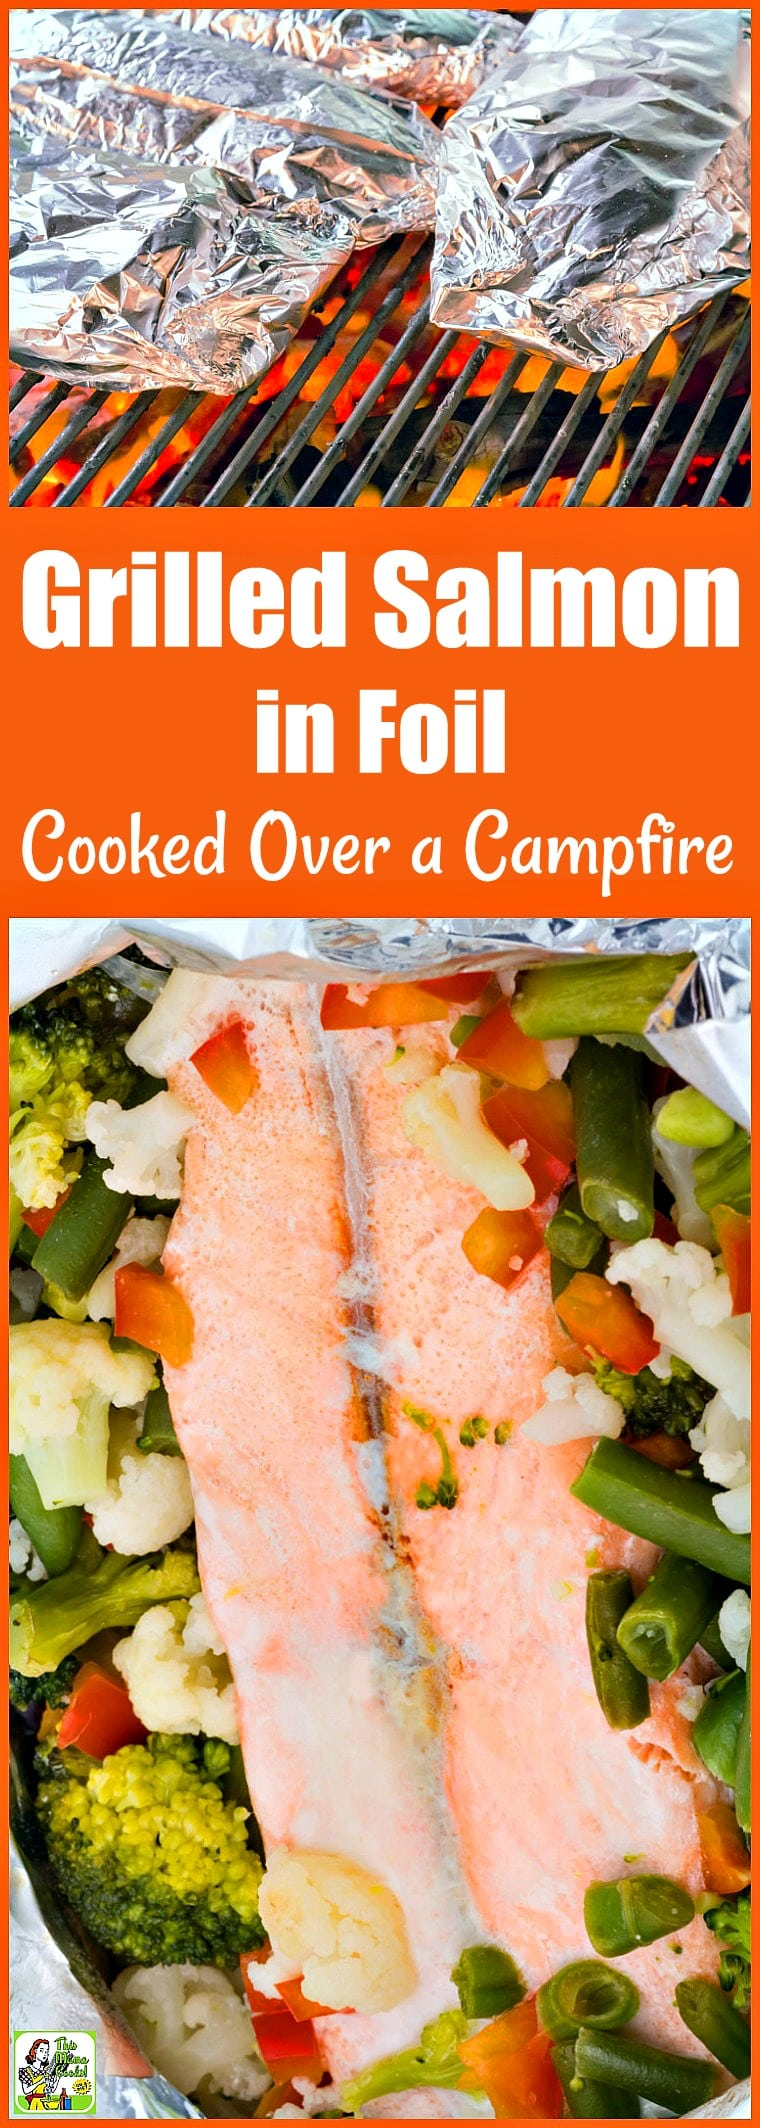 Grilled Salmon in Foil cooked over a campfire